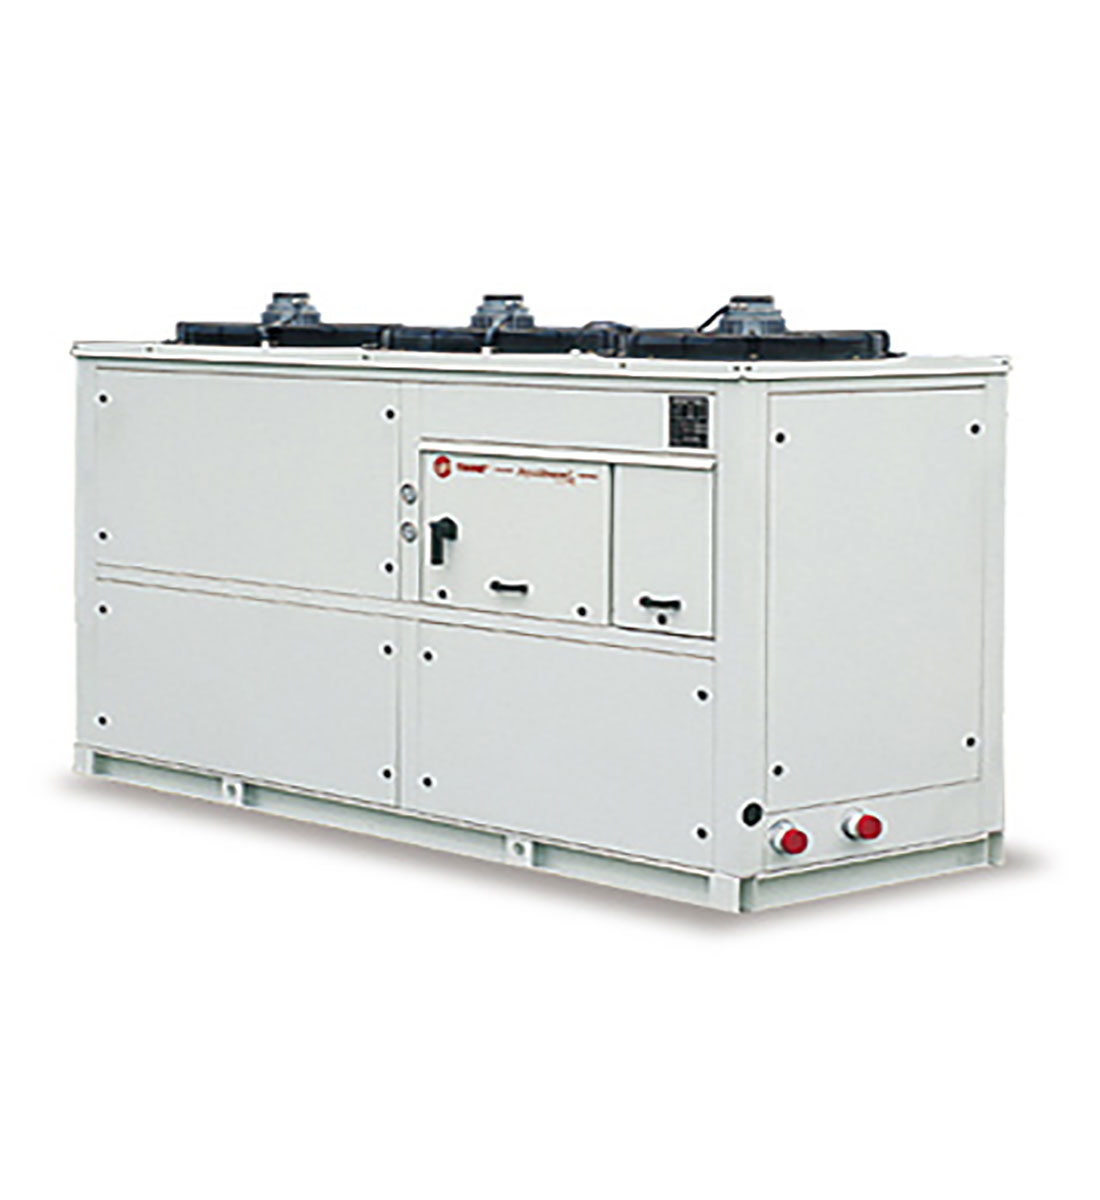 100kW Fluid Chiller